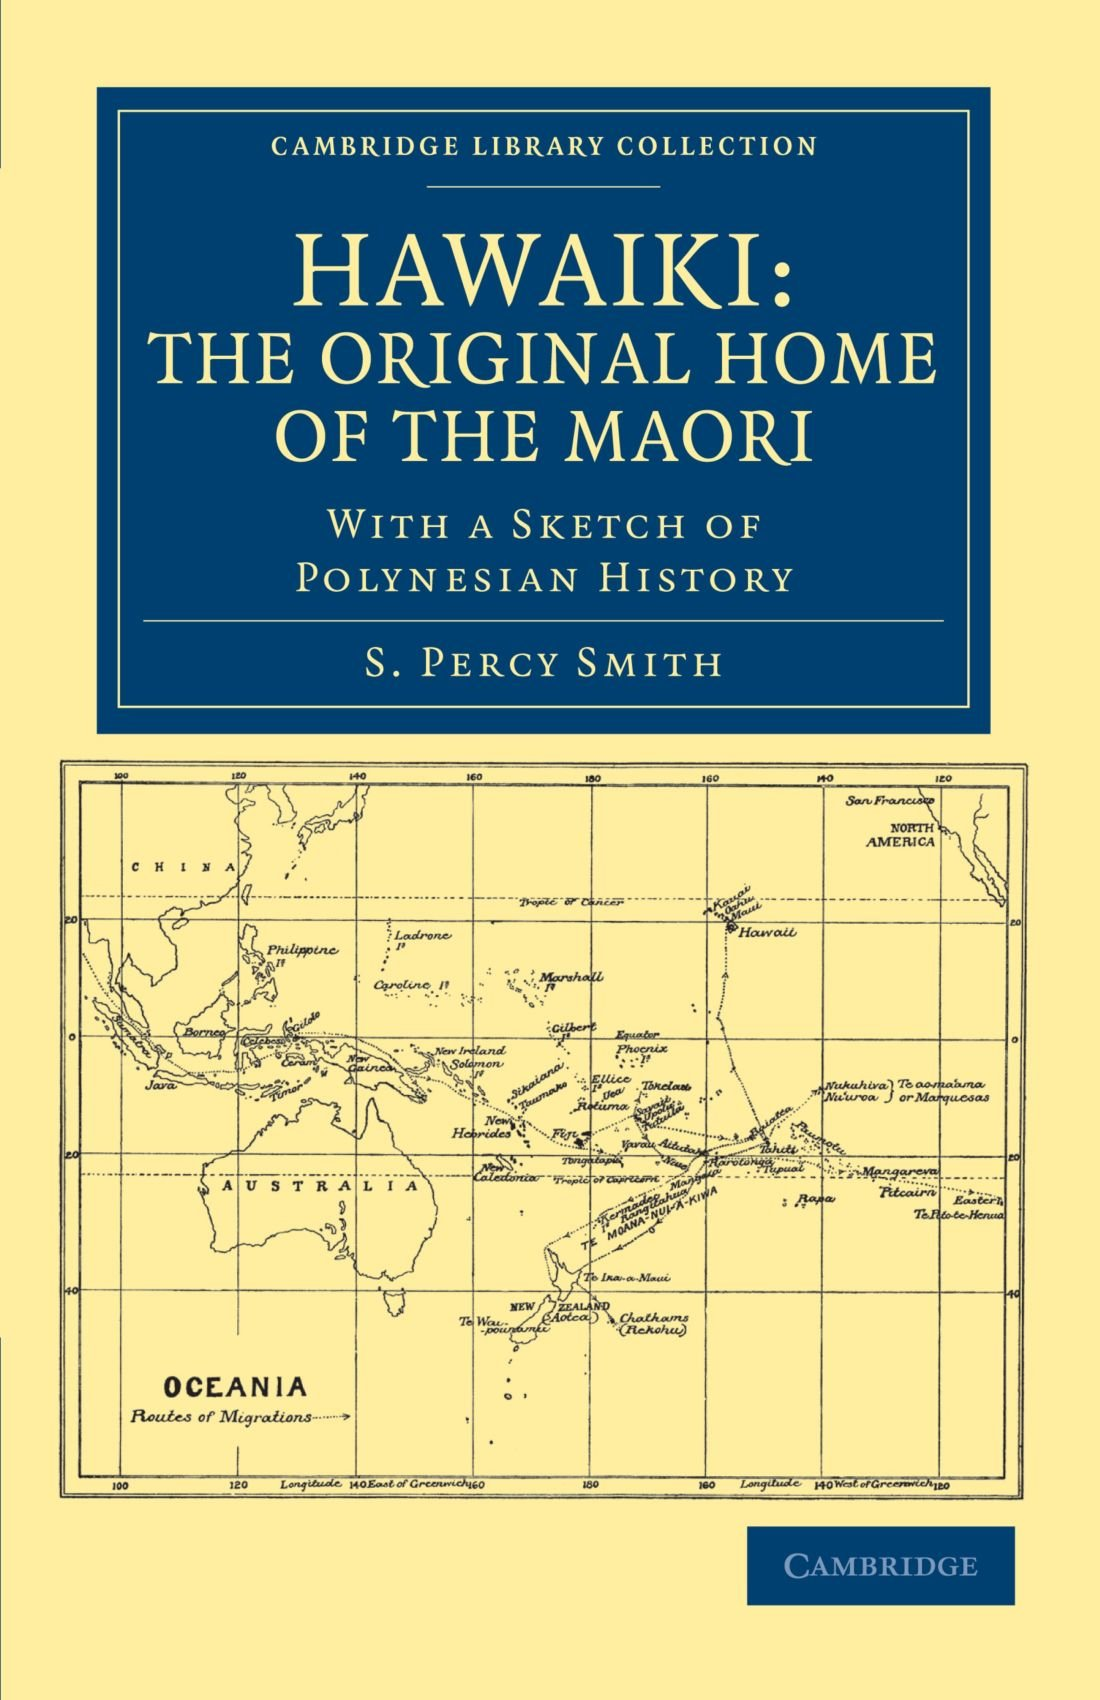 Download Hawaiki: The Original Home of the Maori: With a Sketch of Polynesian History (Cambridge Library Collection - Anthropology) ebook